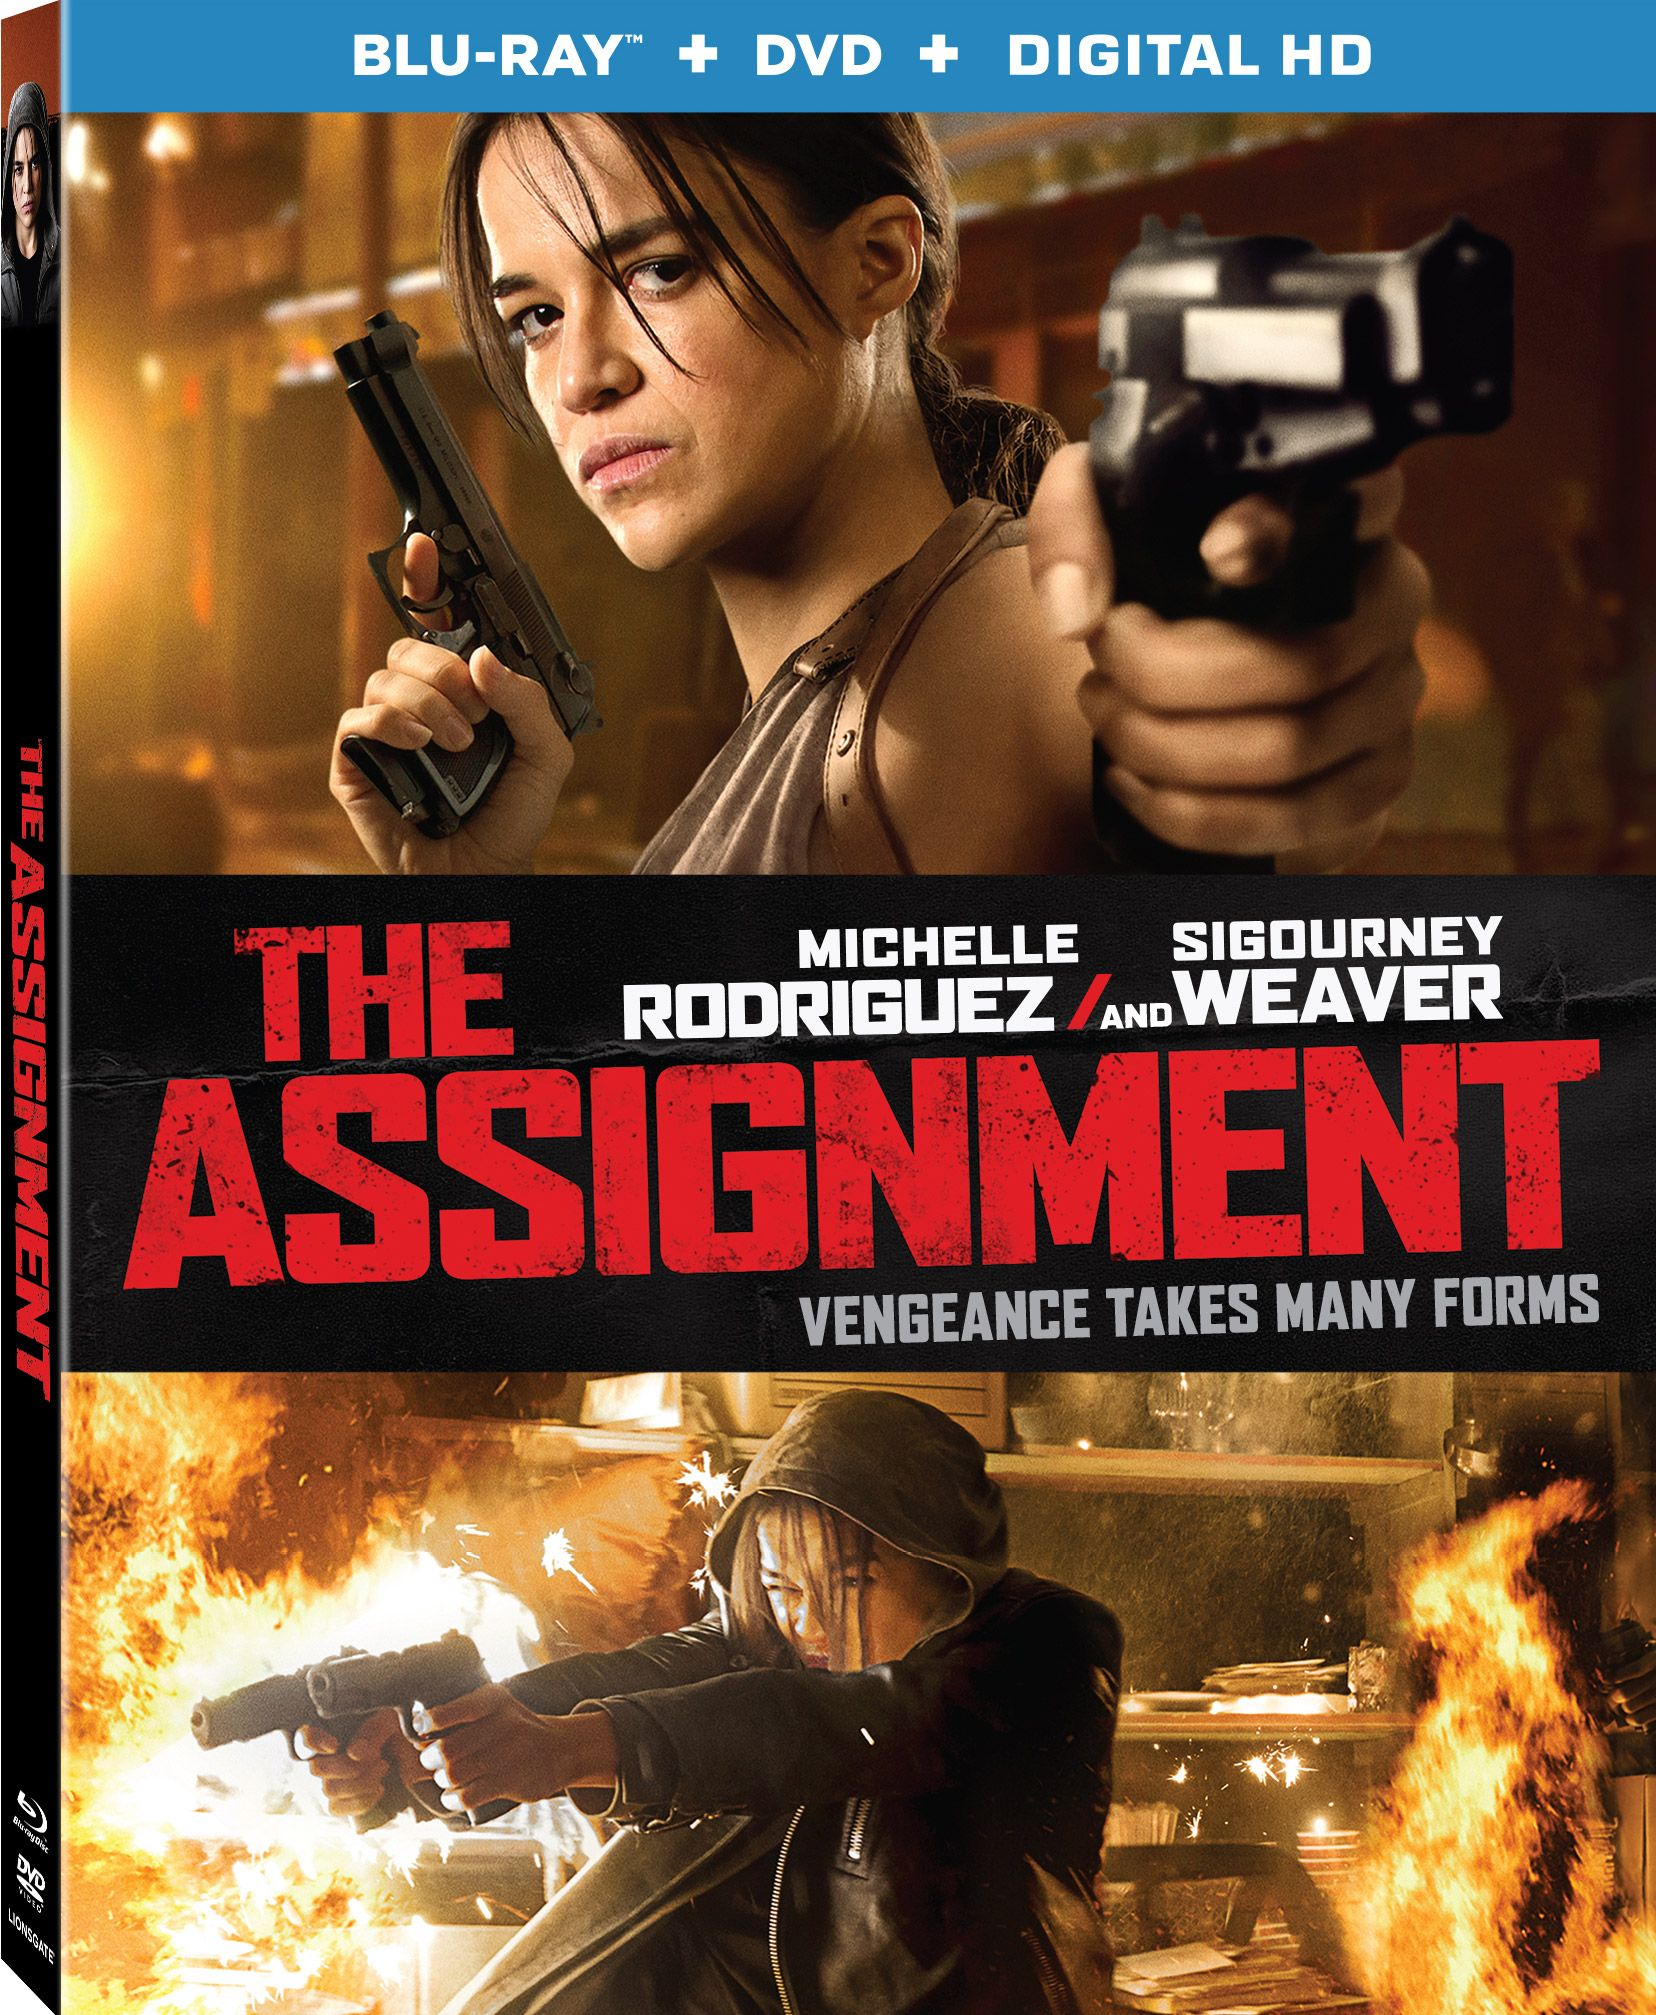 The Assignment Blu Ray Review Free Movies Online Full Movies Online Free Movies Online